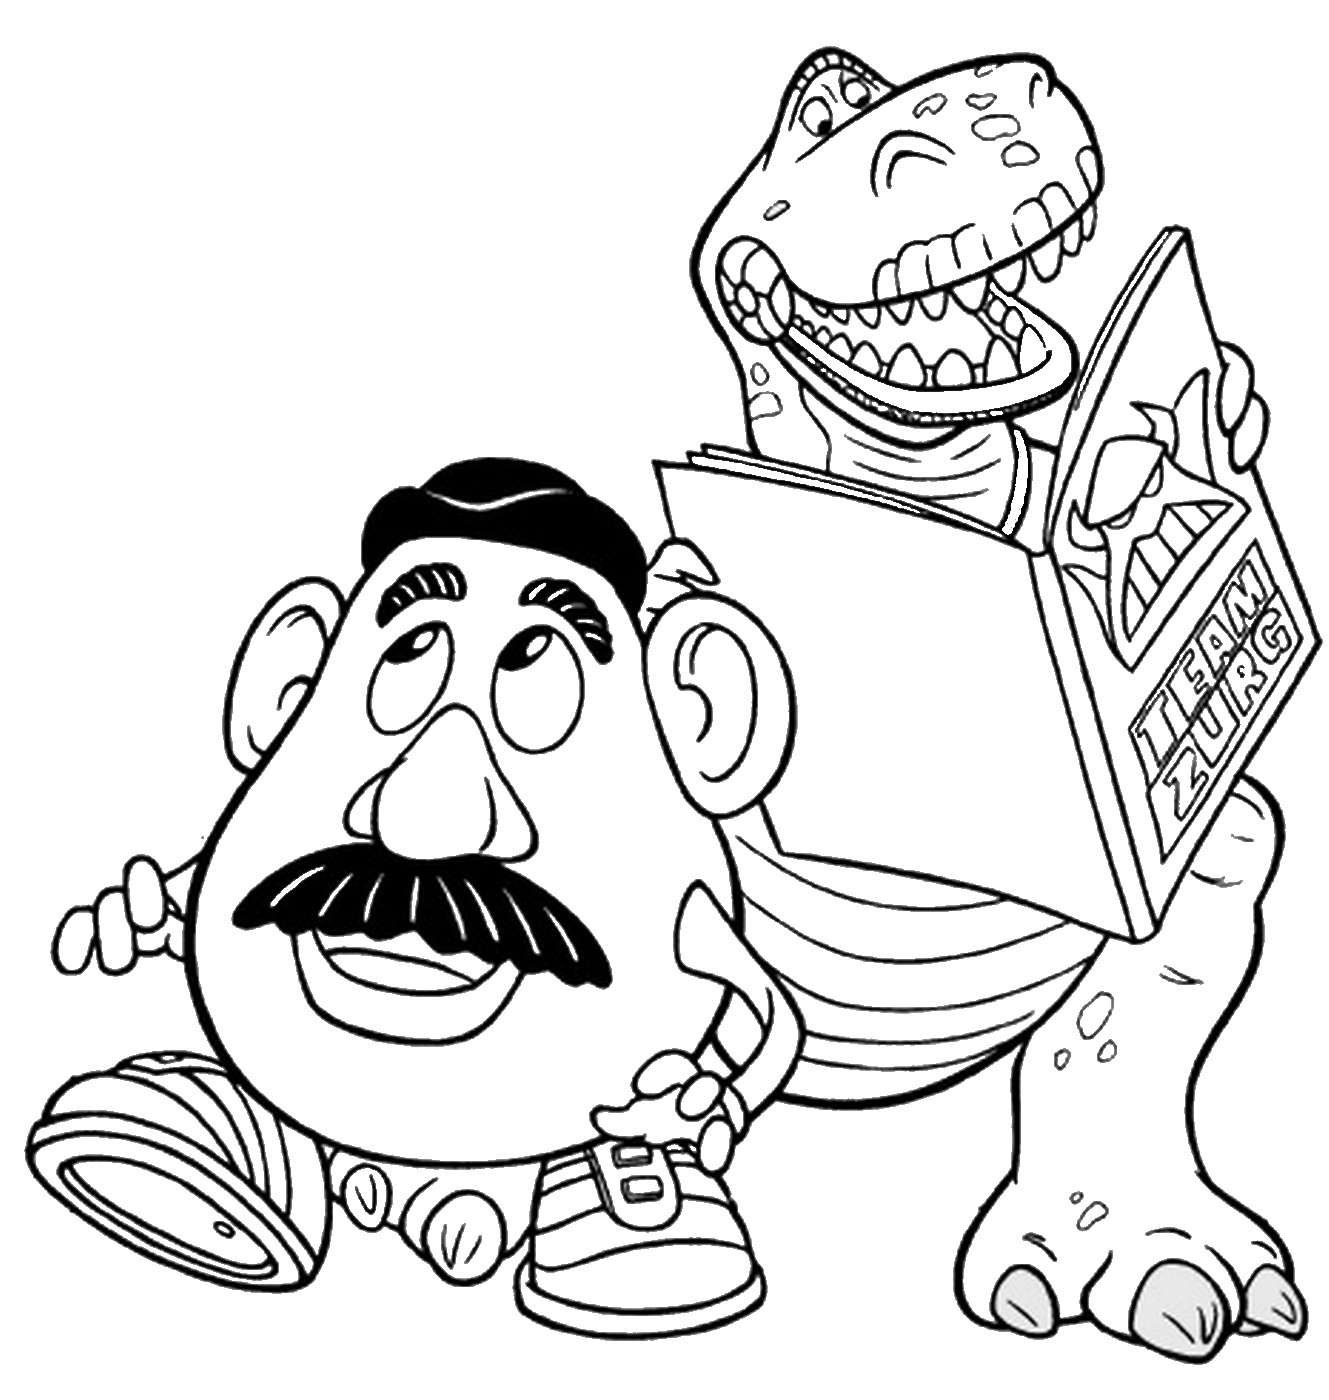 coloring toy story printables toy story 4 coloring pages get coloring pages toy coloring printables story